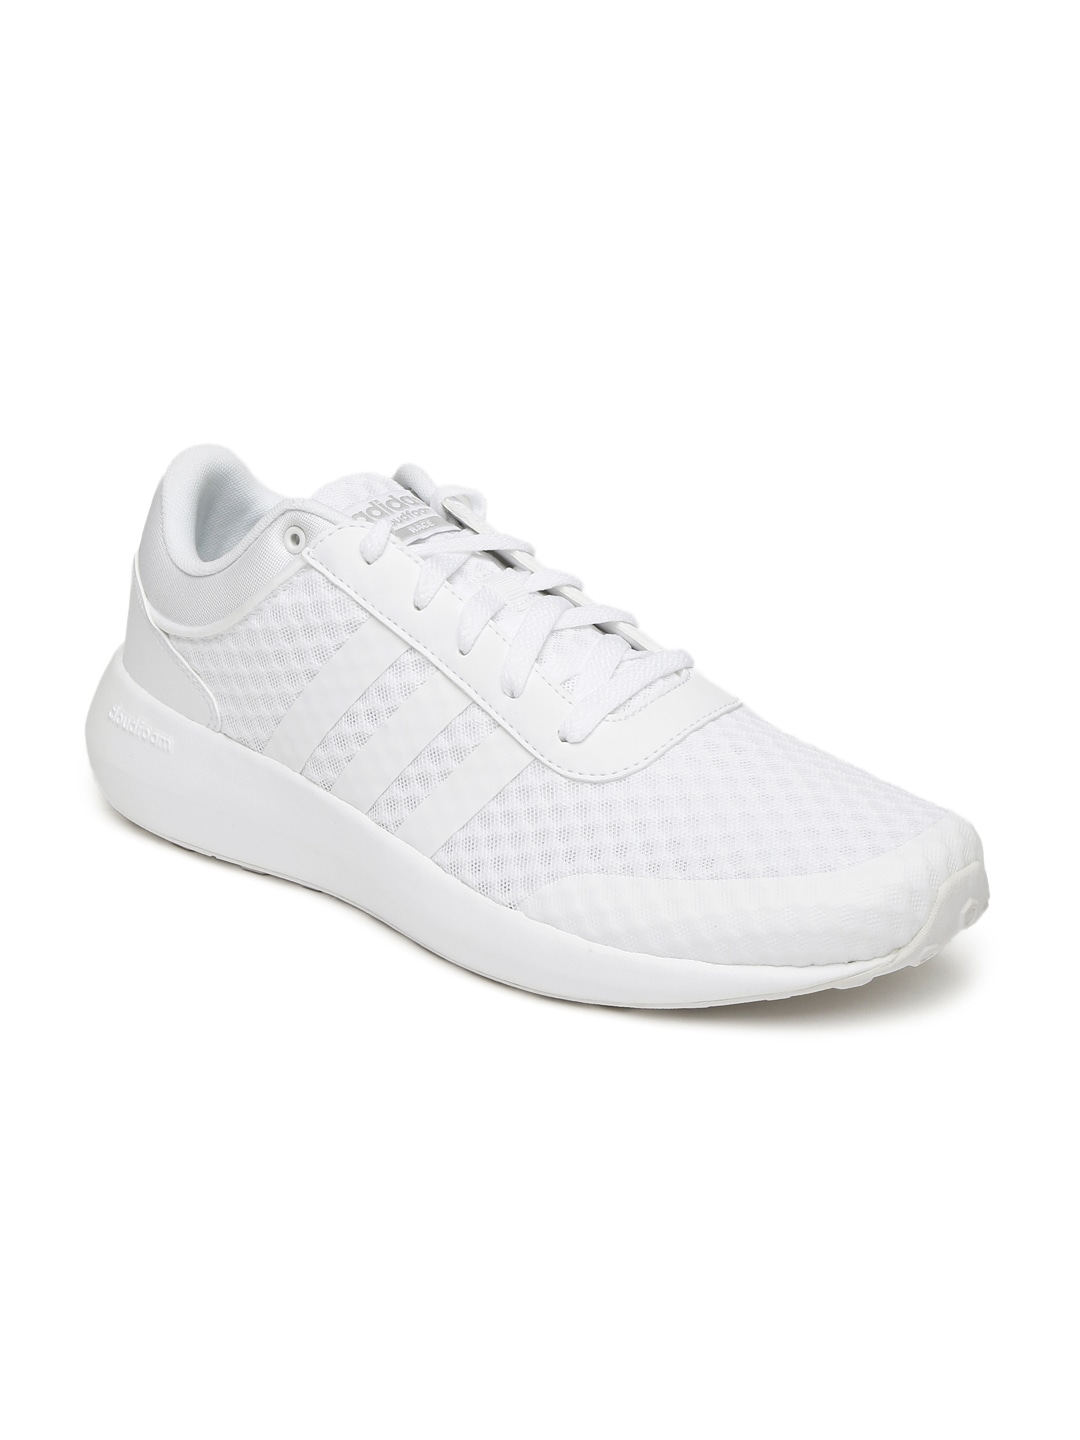 2a45cd009da7 ... casual shoes 26168 2689b  coupon code for adidas neo men sneakers price  in india d279b 88d15